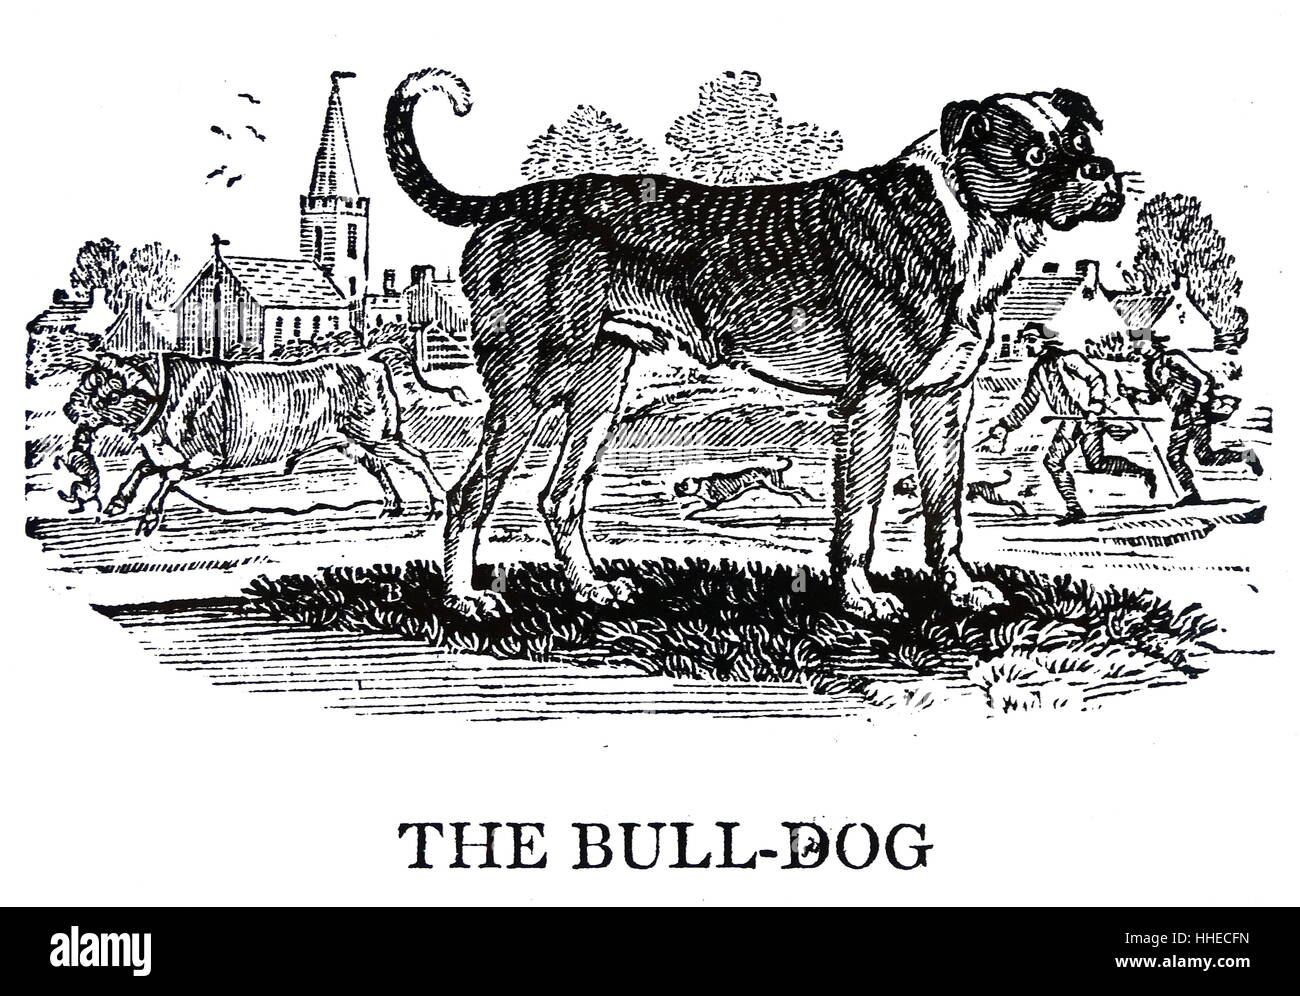 The Bulldog. From Thomas Bewick A General History of Quadrupeds, Newcastle upon Tyne, 1790. - Stock Image